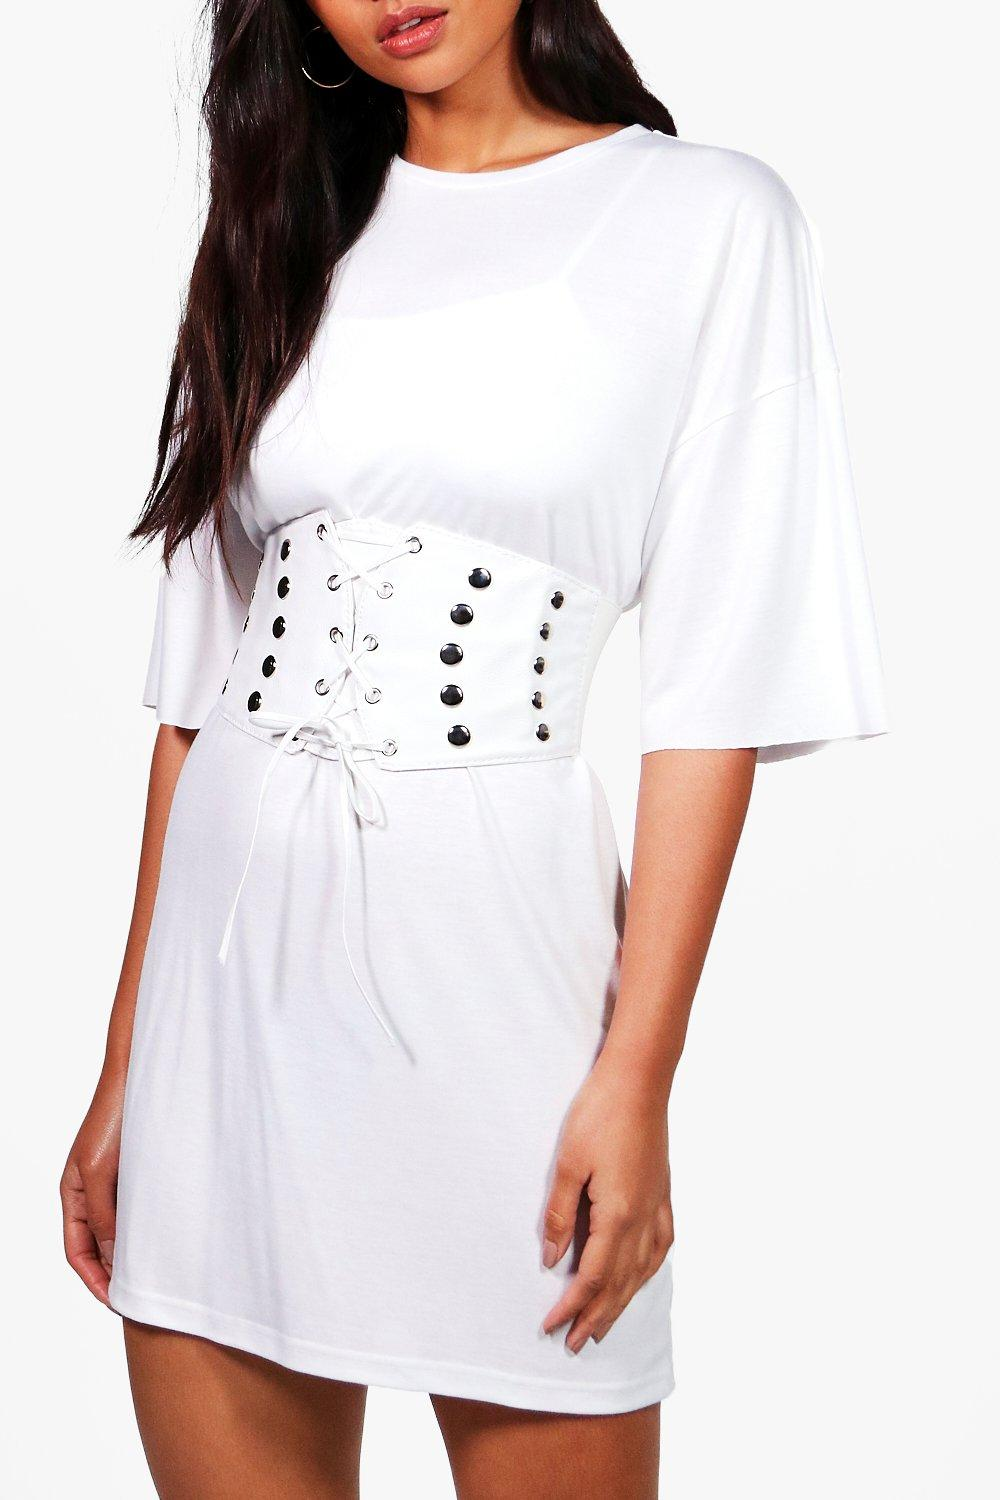 Stud Detailing Lace Up Corset Belt - white - Hanna